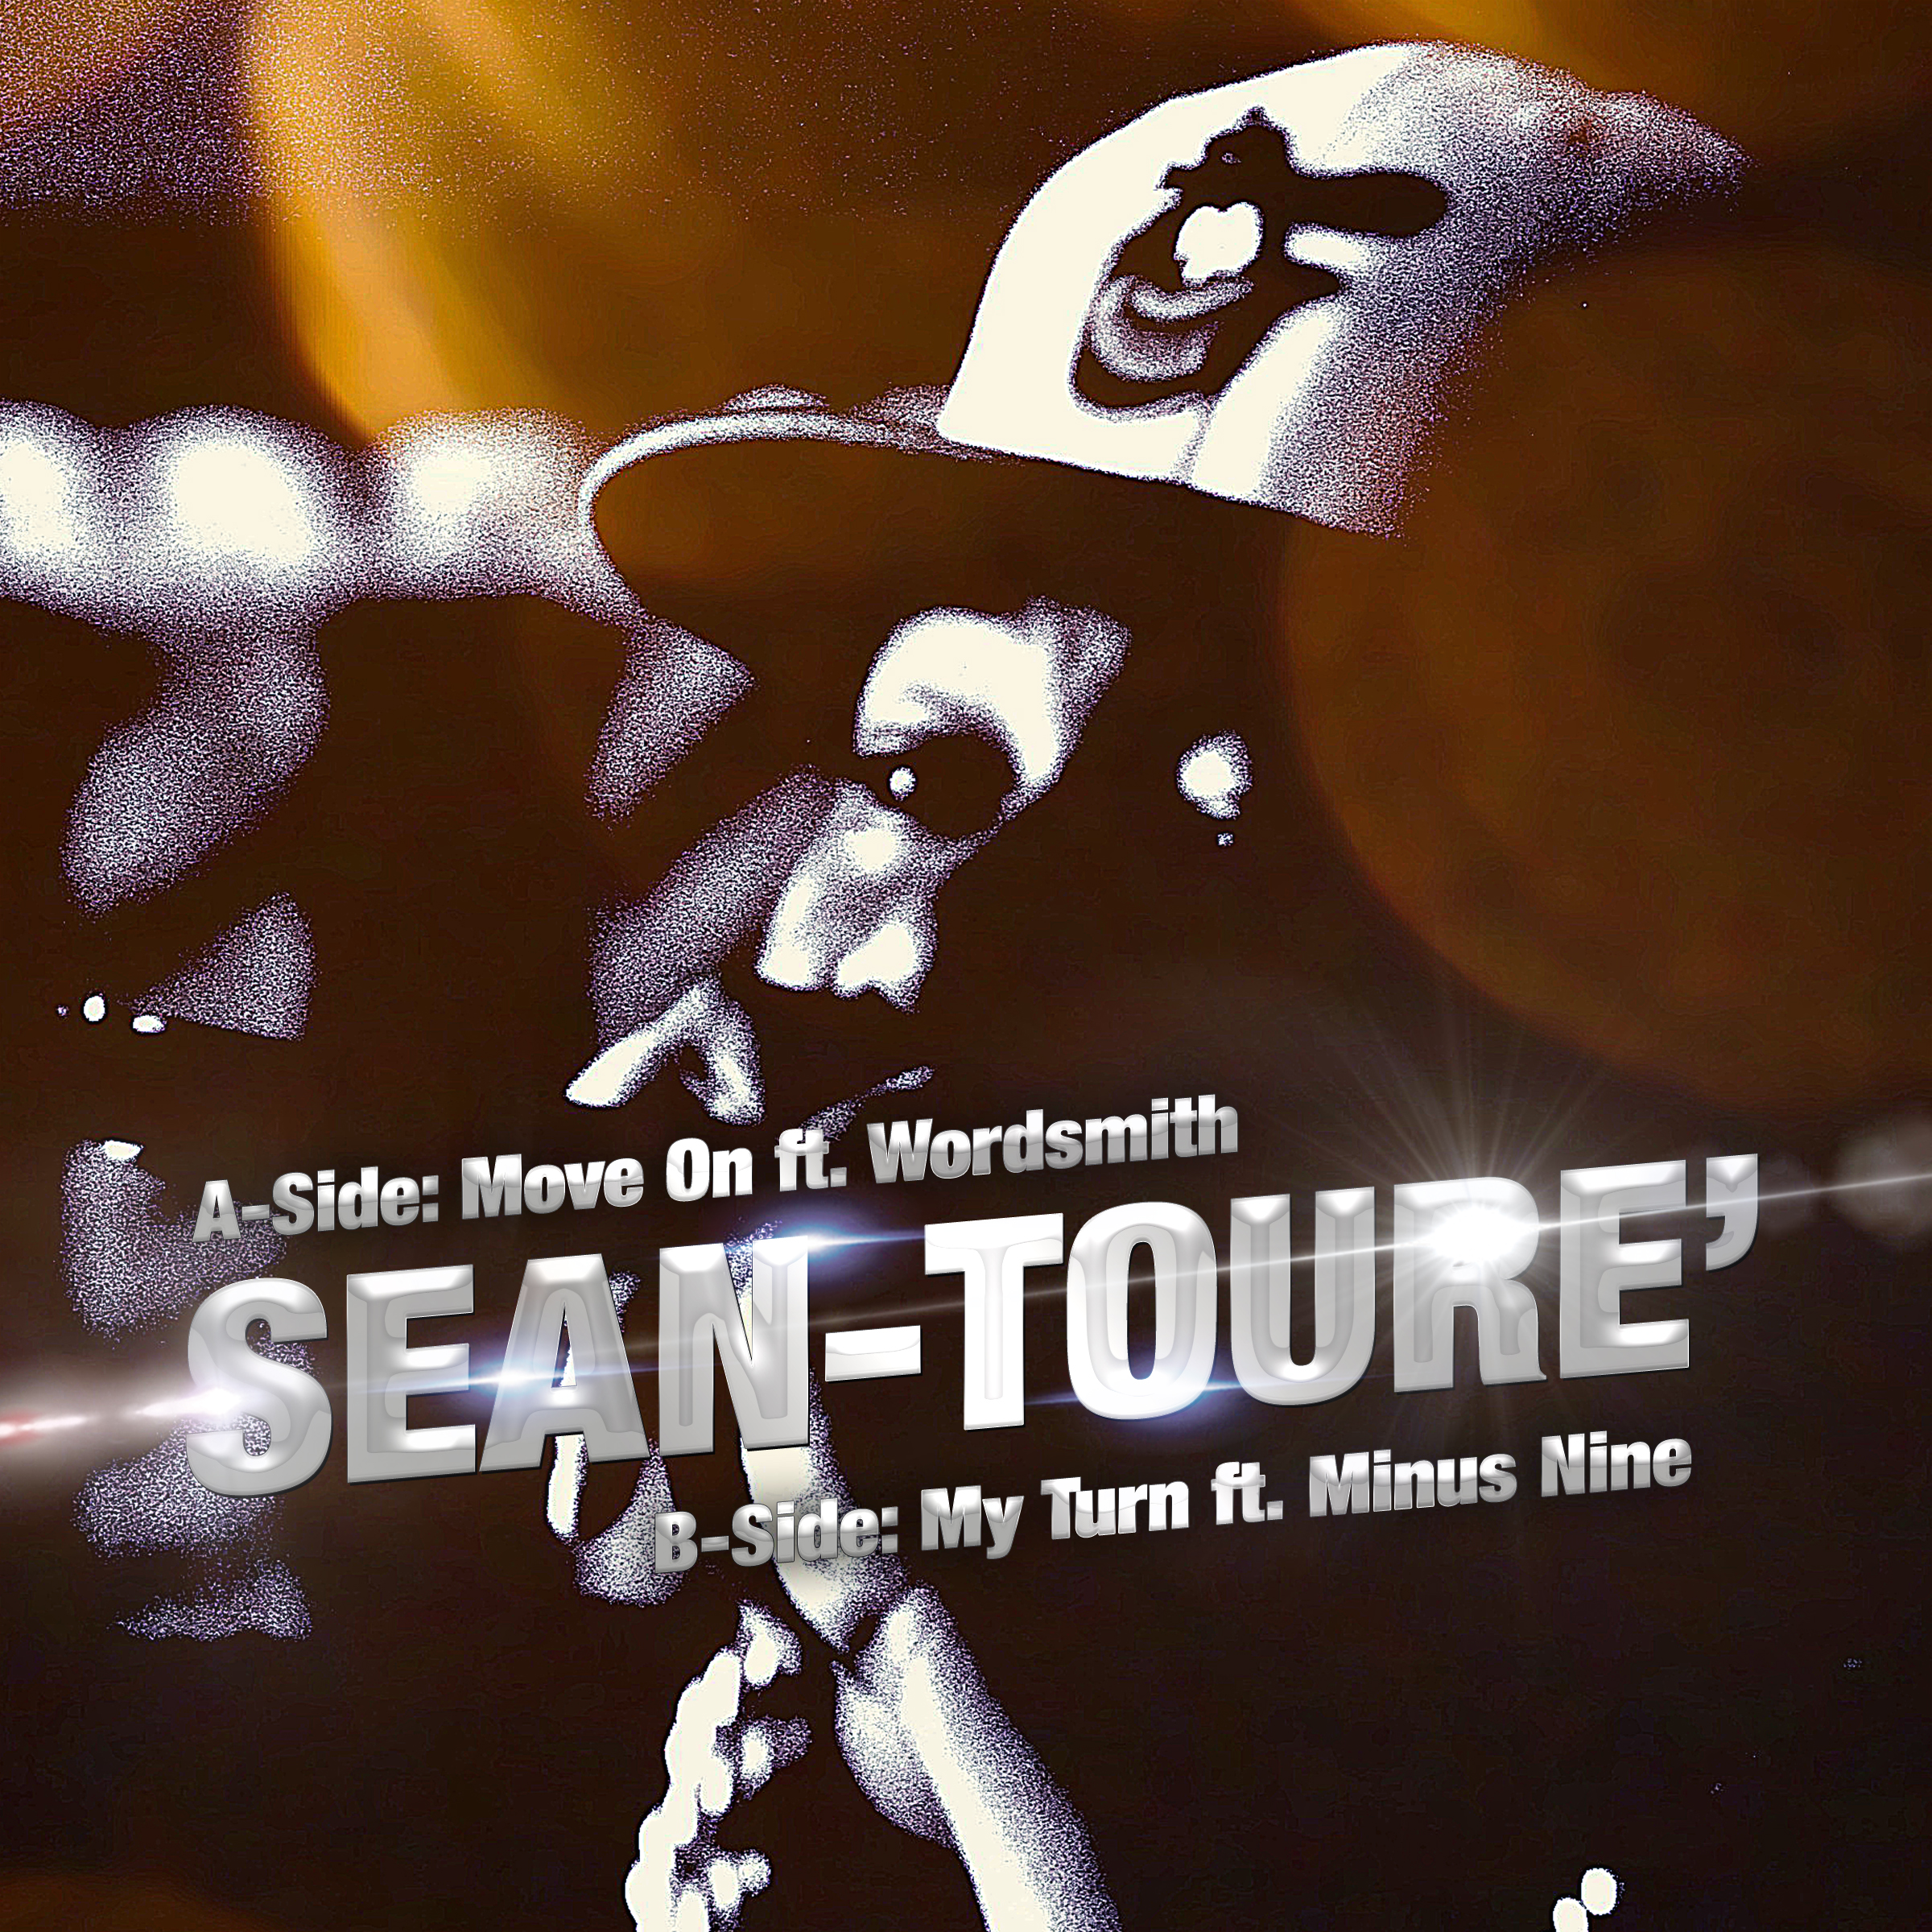 Sean-Toure Move On CD Cover 1